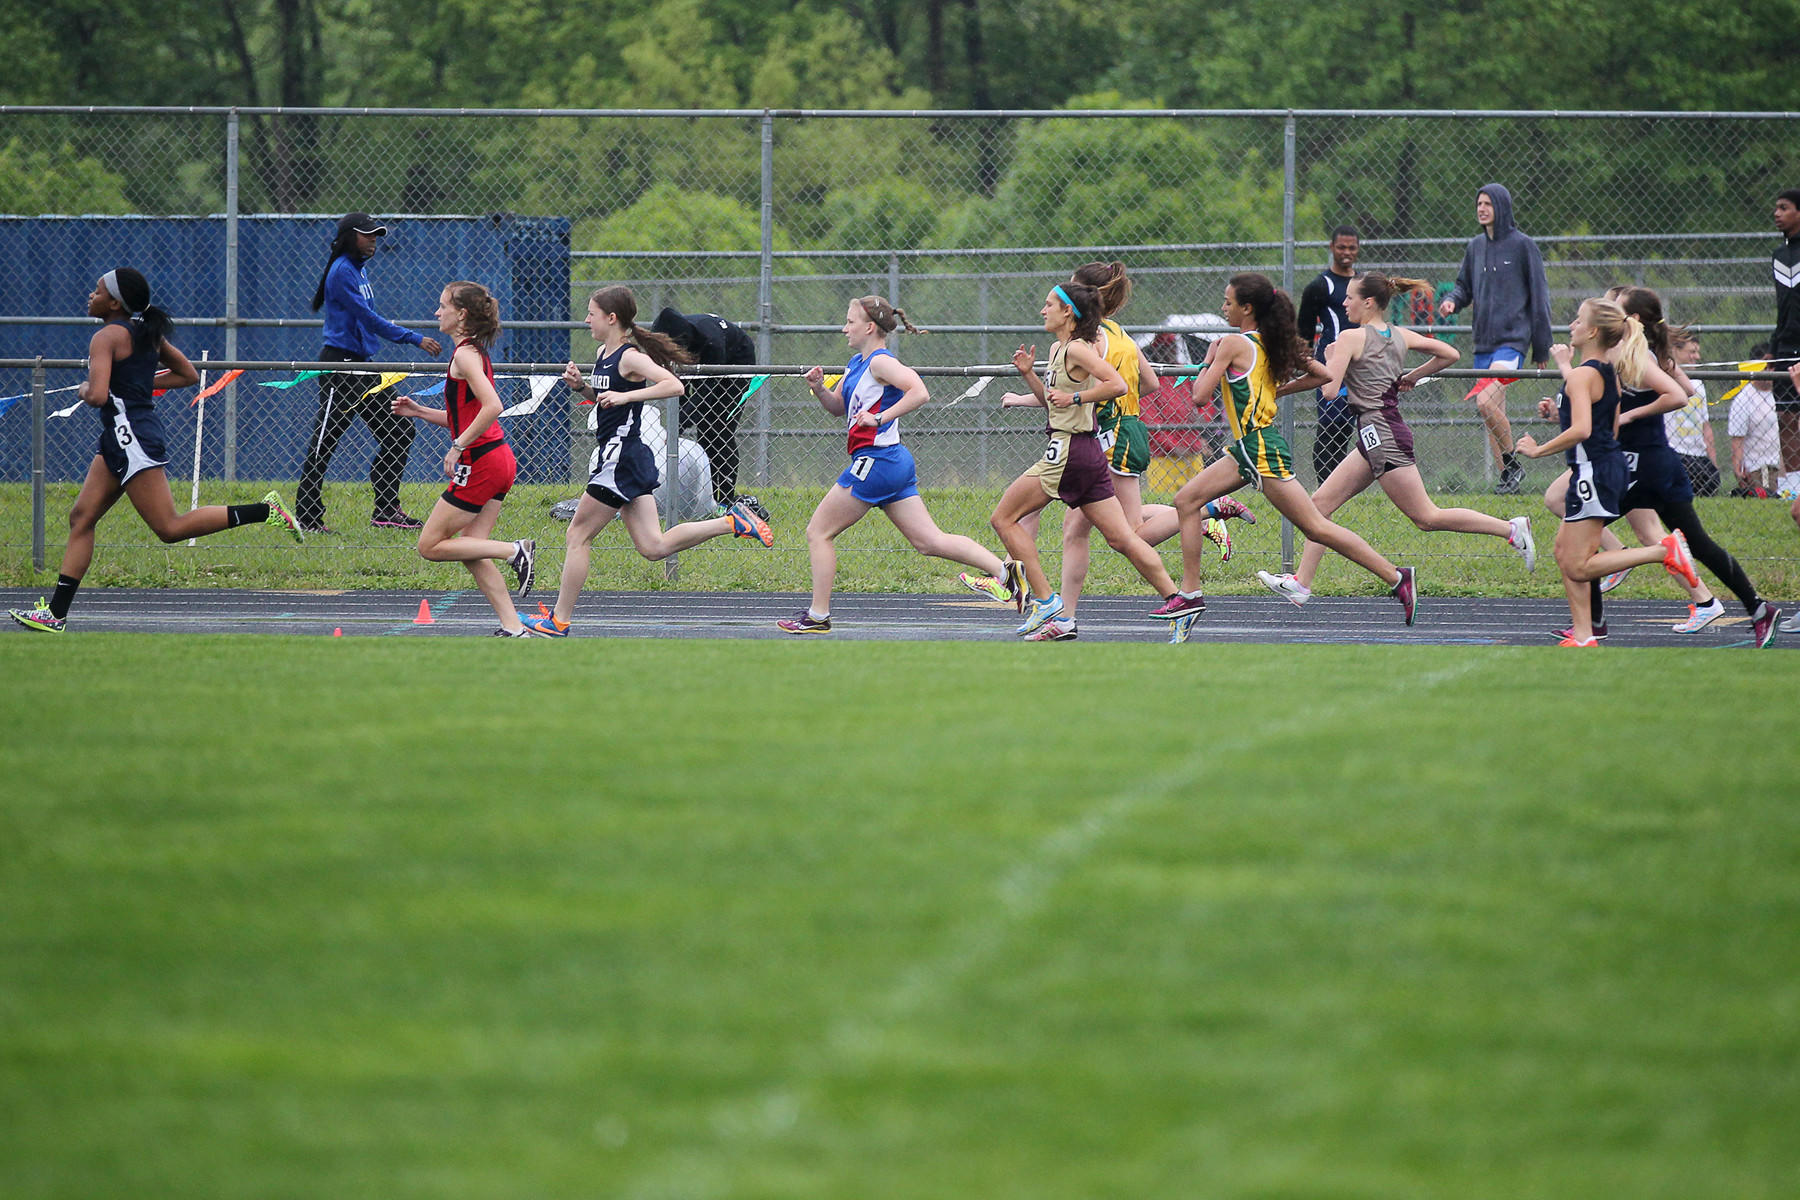 Girls race in the first 1600 Meter Run during the 2013 Howard County outdoor track and field championship.